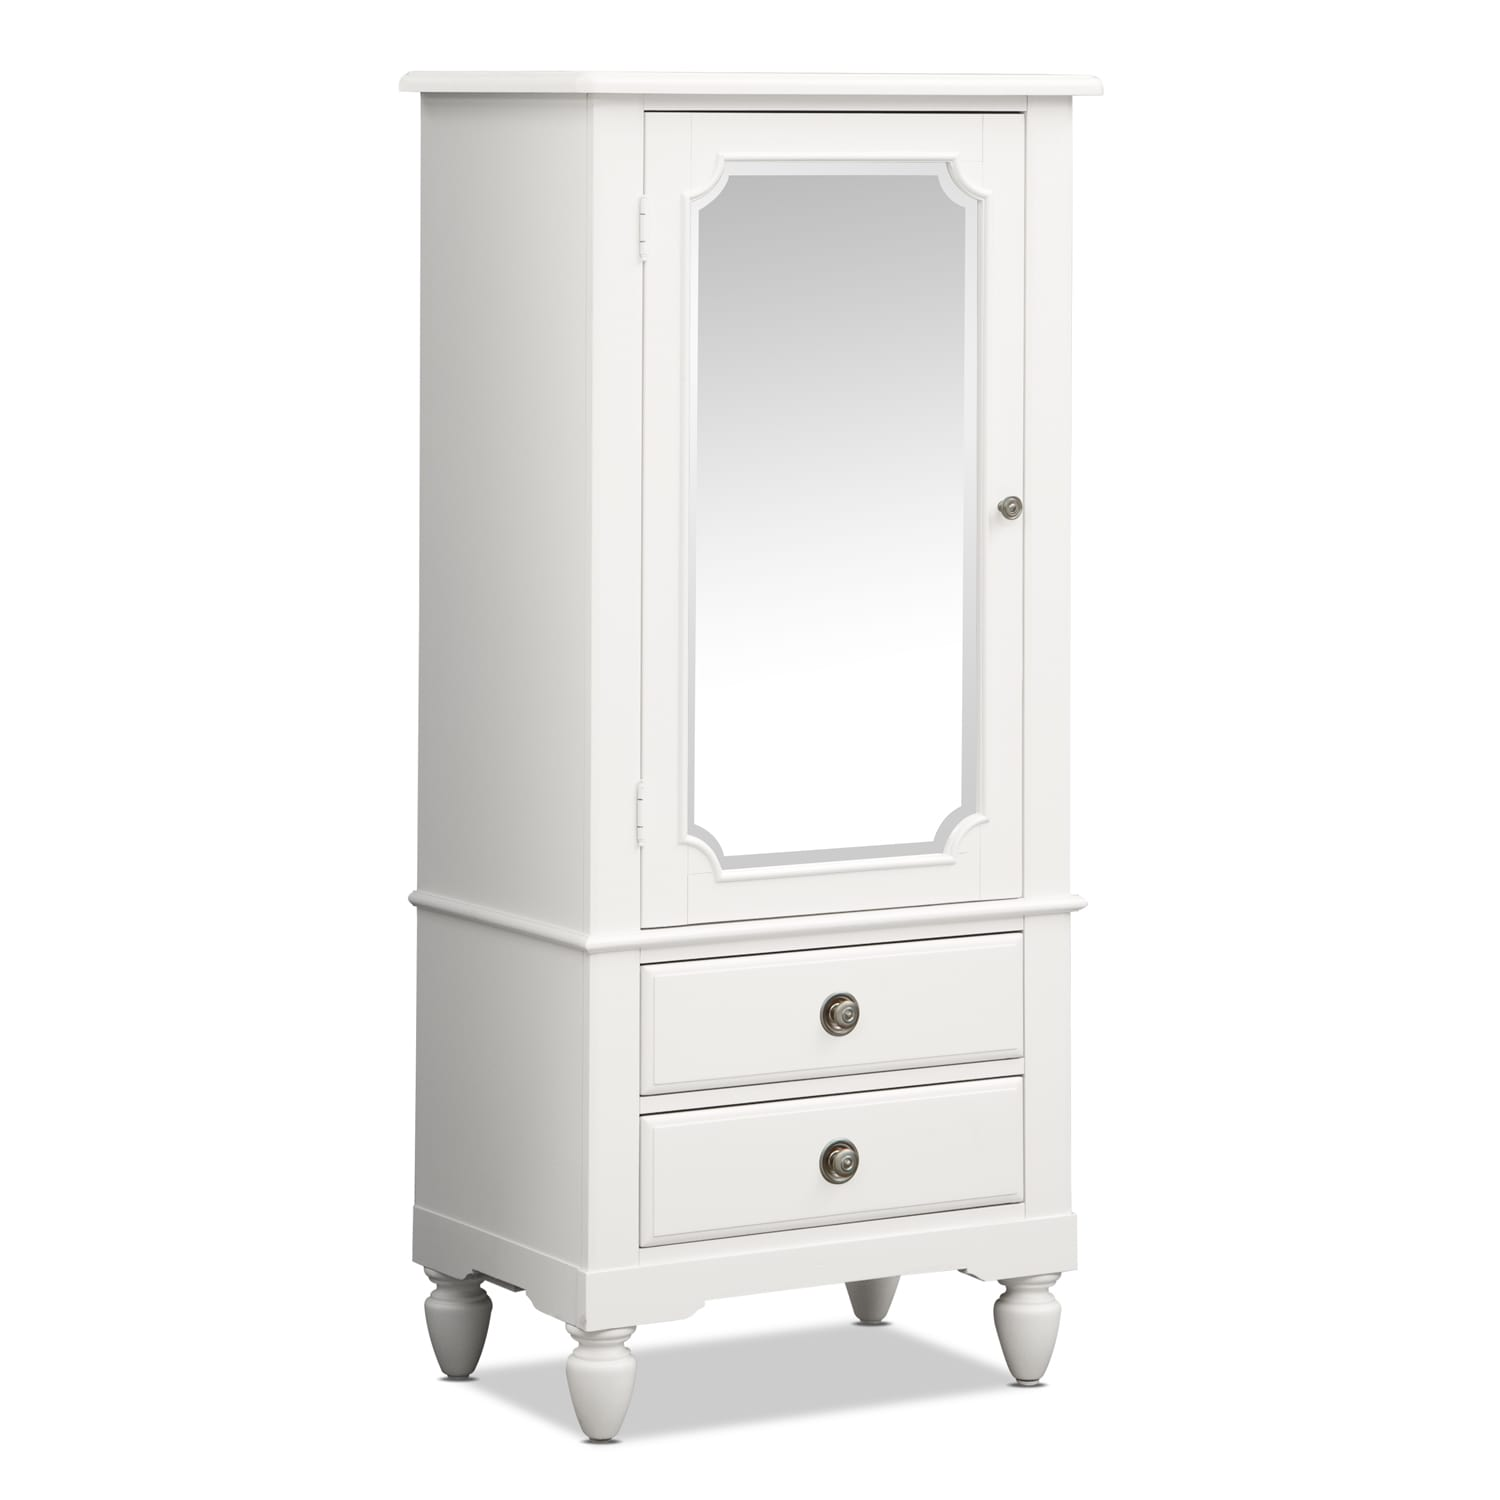 The Seaside White Ii Collection American Signature Furniture: seaside collection furniture